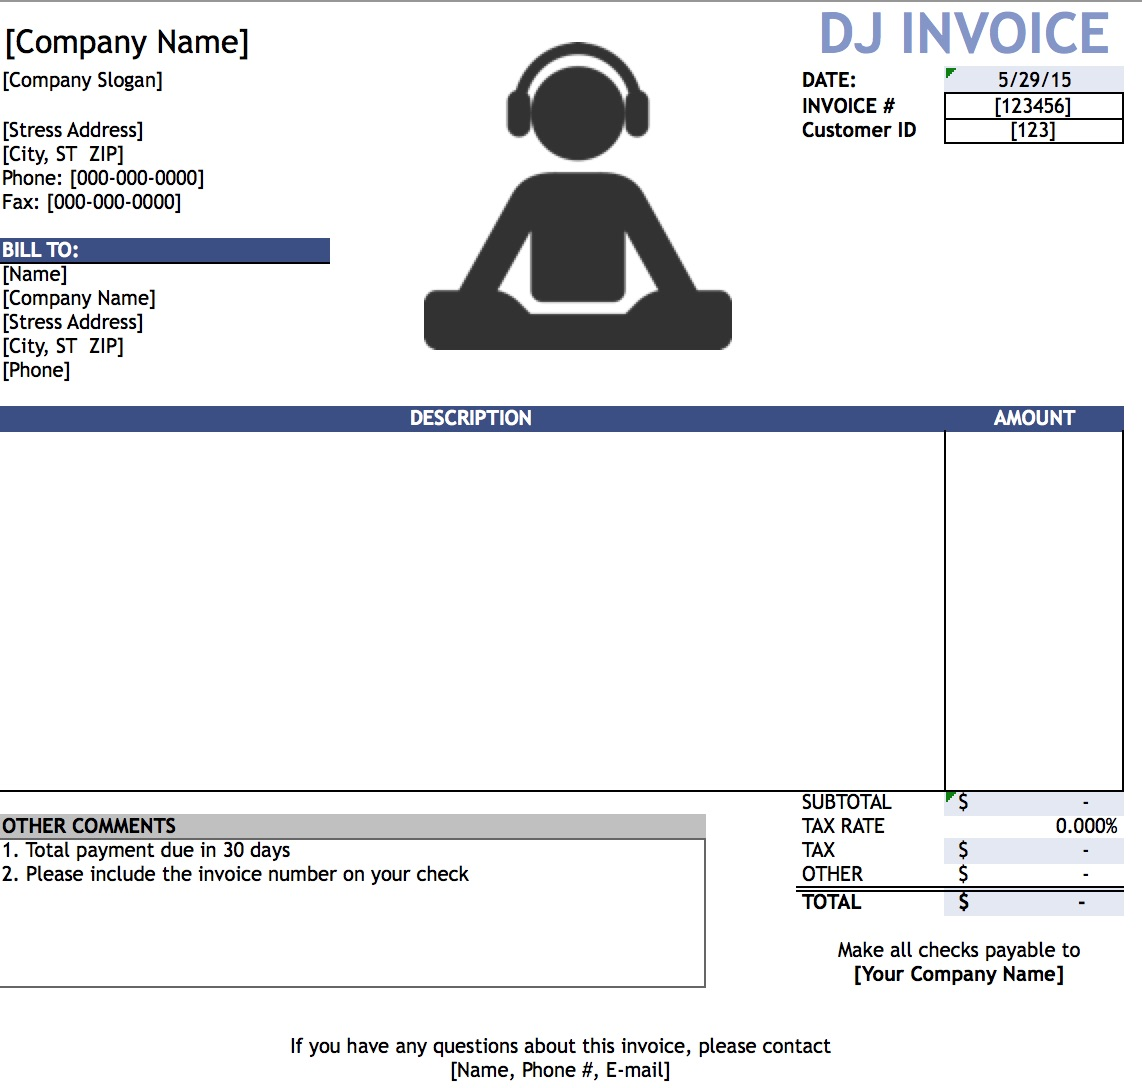 Free DJ Disc Jockey Invoice Template Excel PDF Word Doc - Free basic invoice template for service business